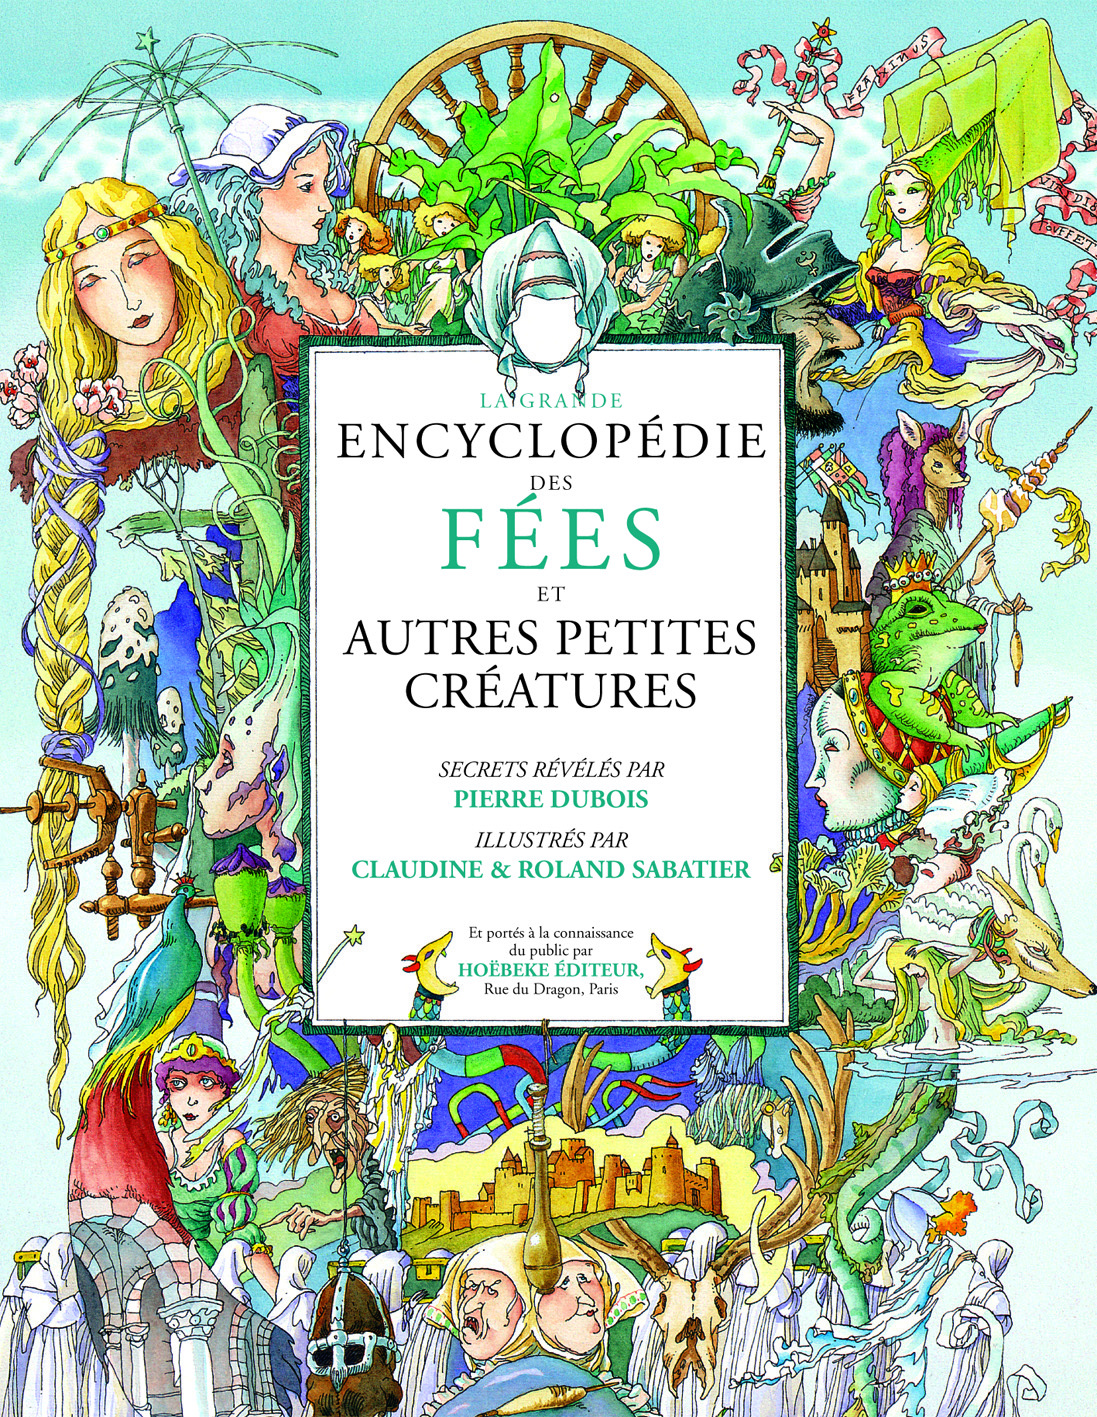 LA GRANDE ENCYCLOPEDIE DES FEES